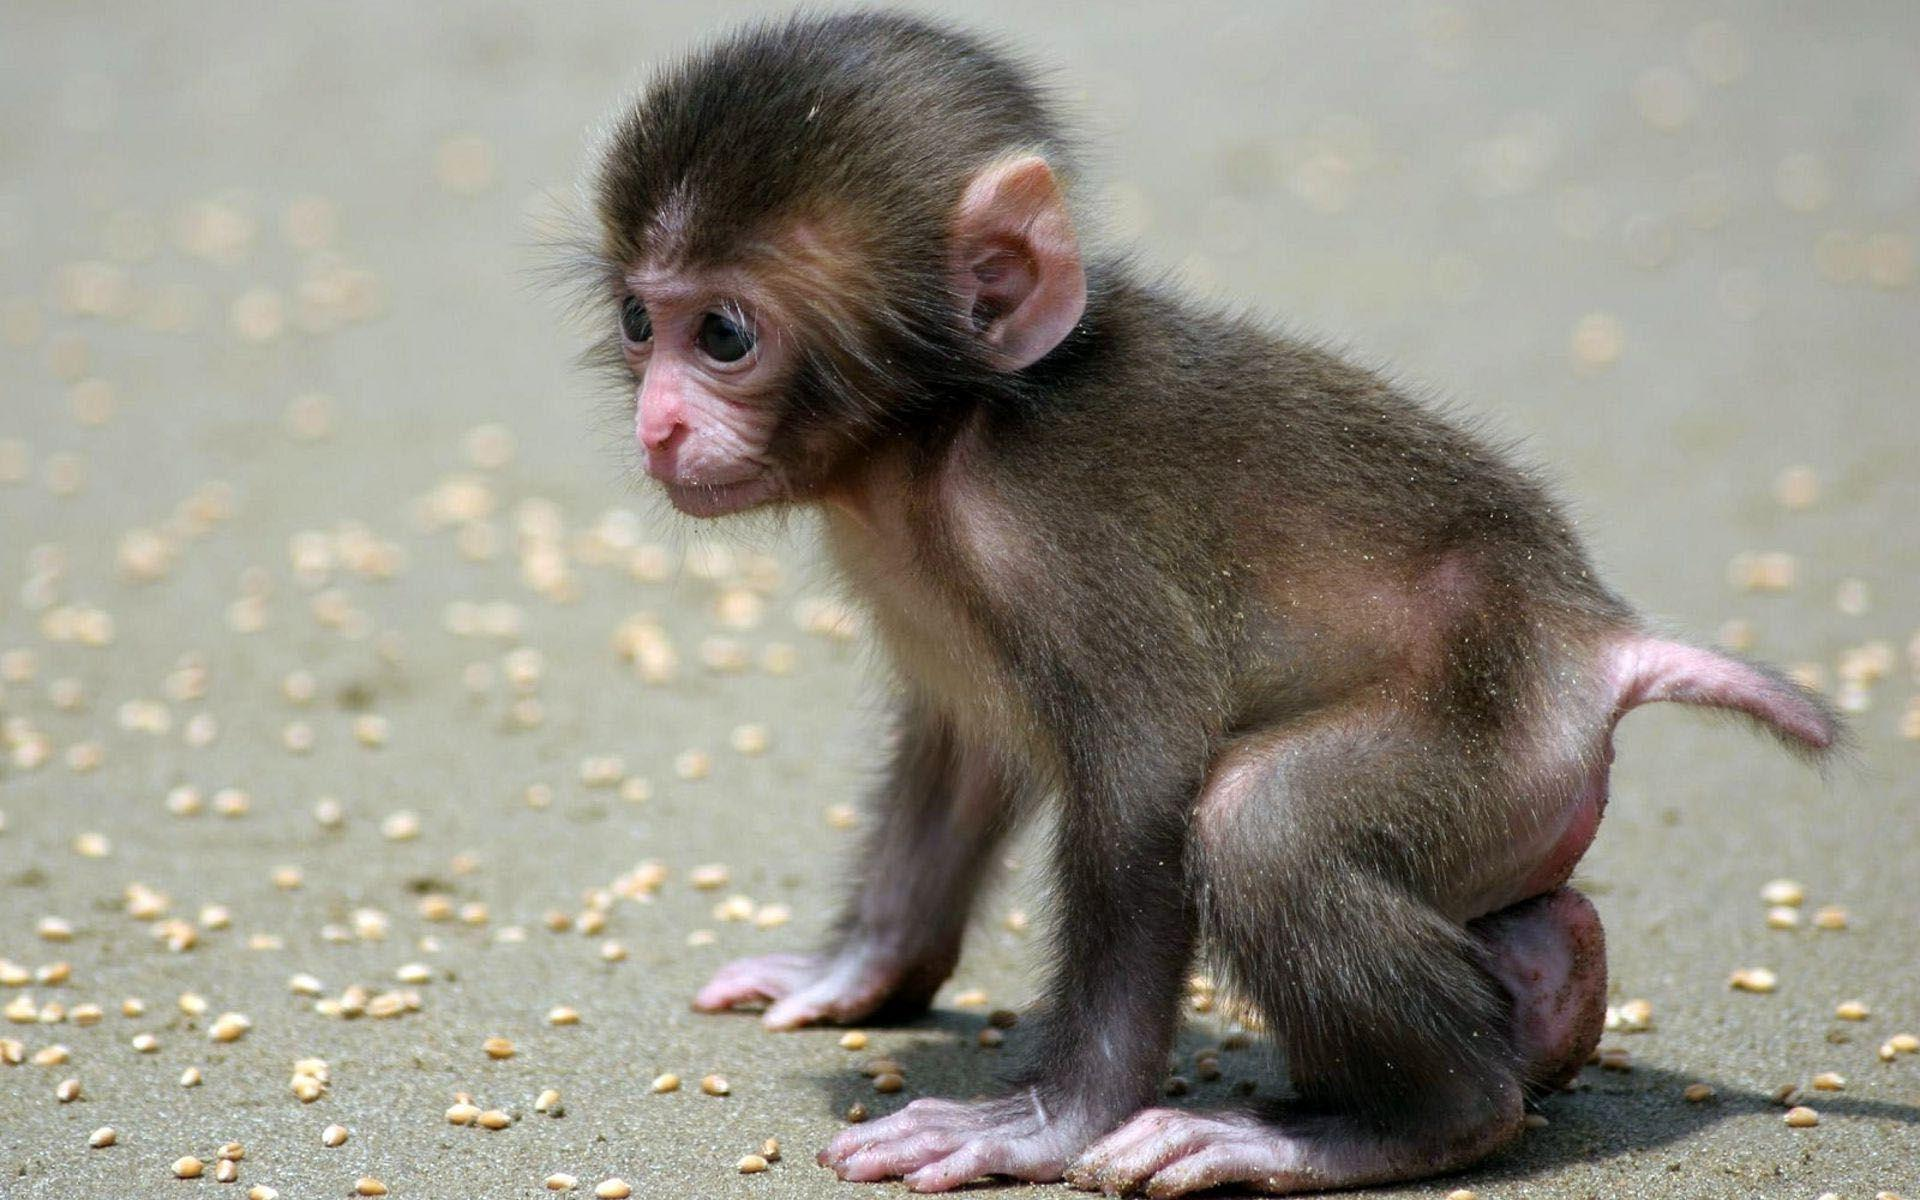 Cute Smiling Babies Wallpapers Baby Monkey Wallpapers Wallpaper Cave